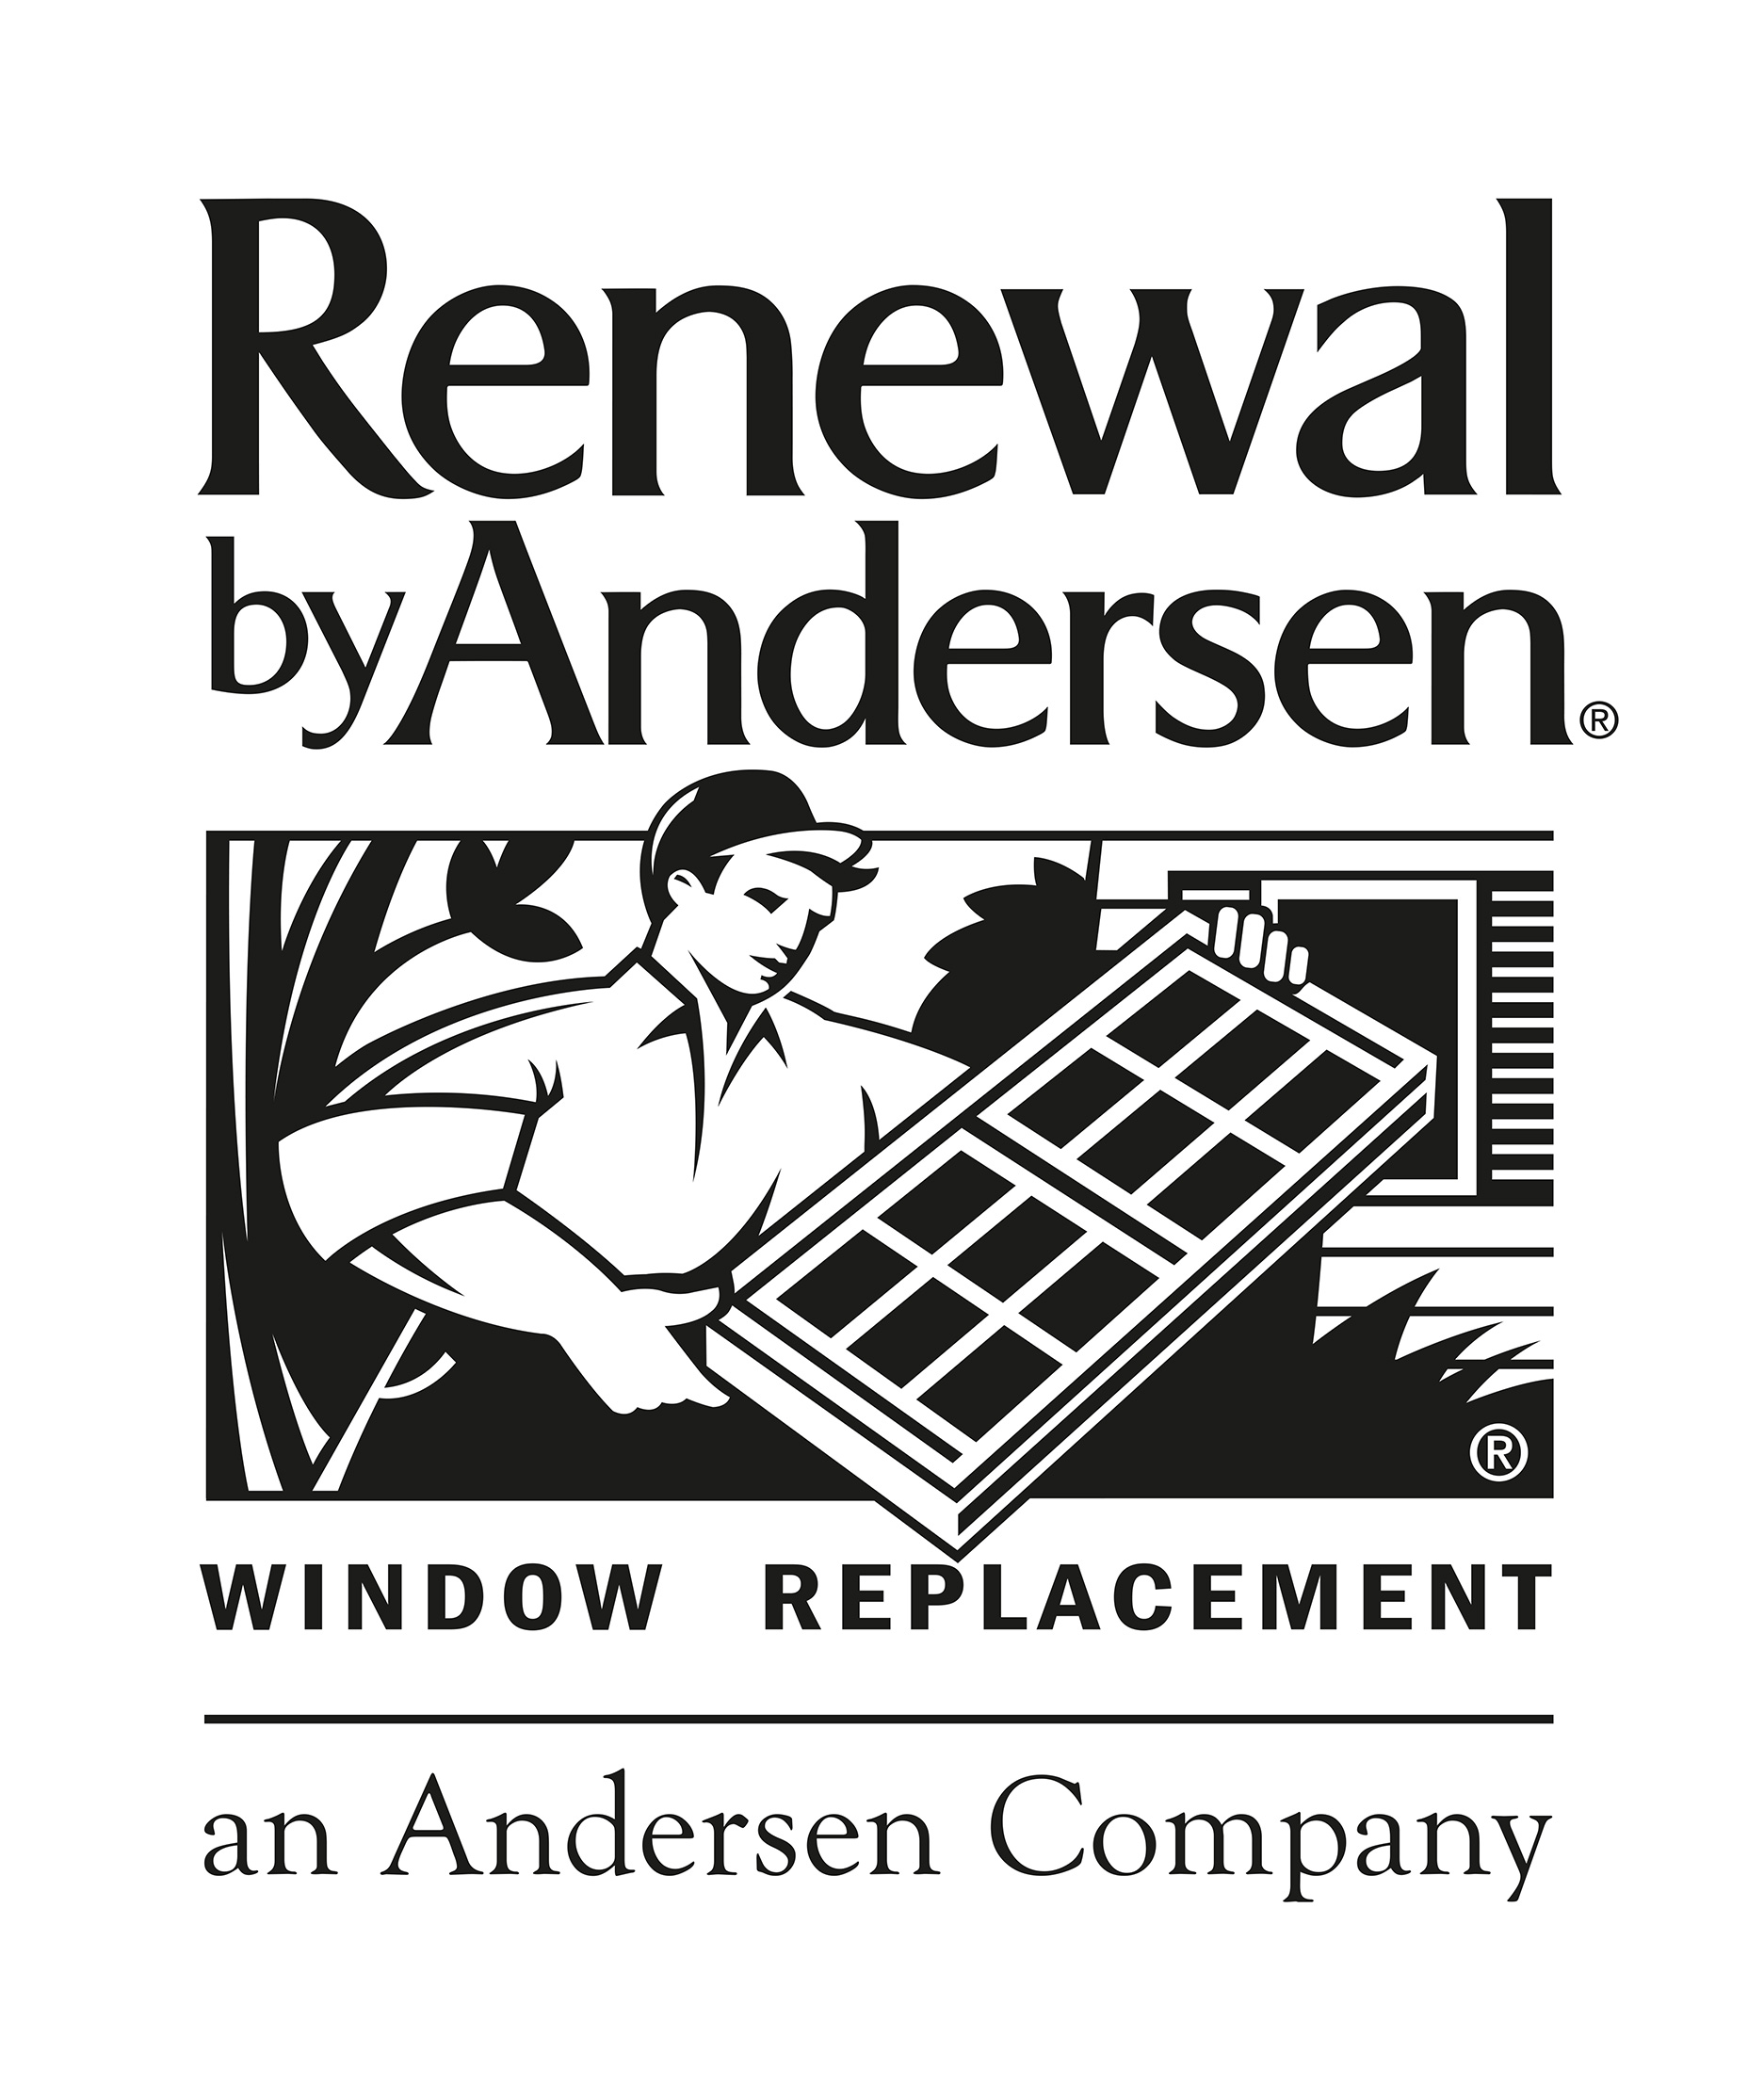 Renewal by Anderson Windows